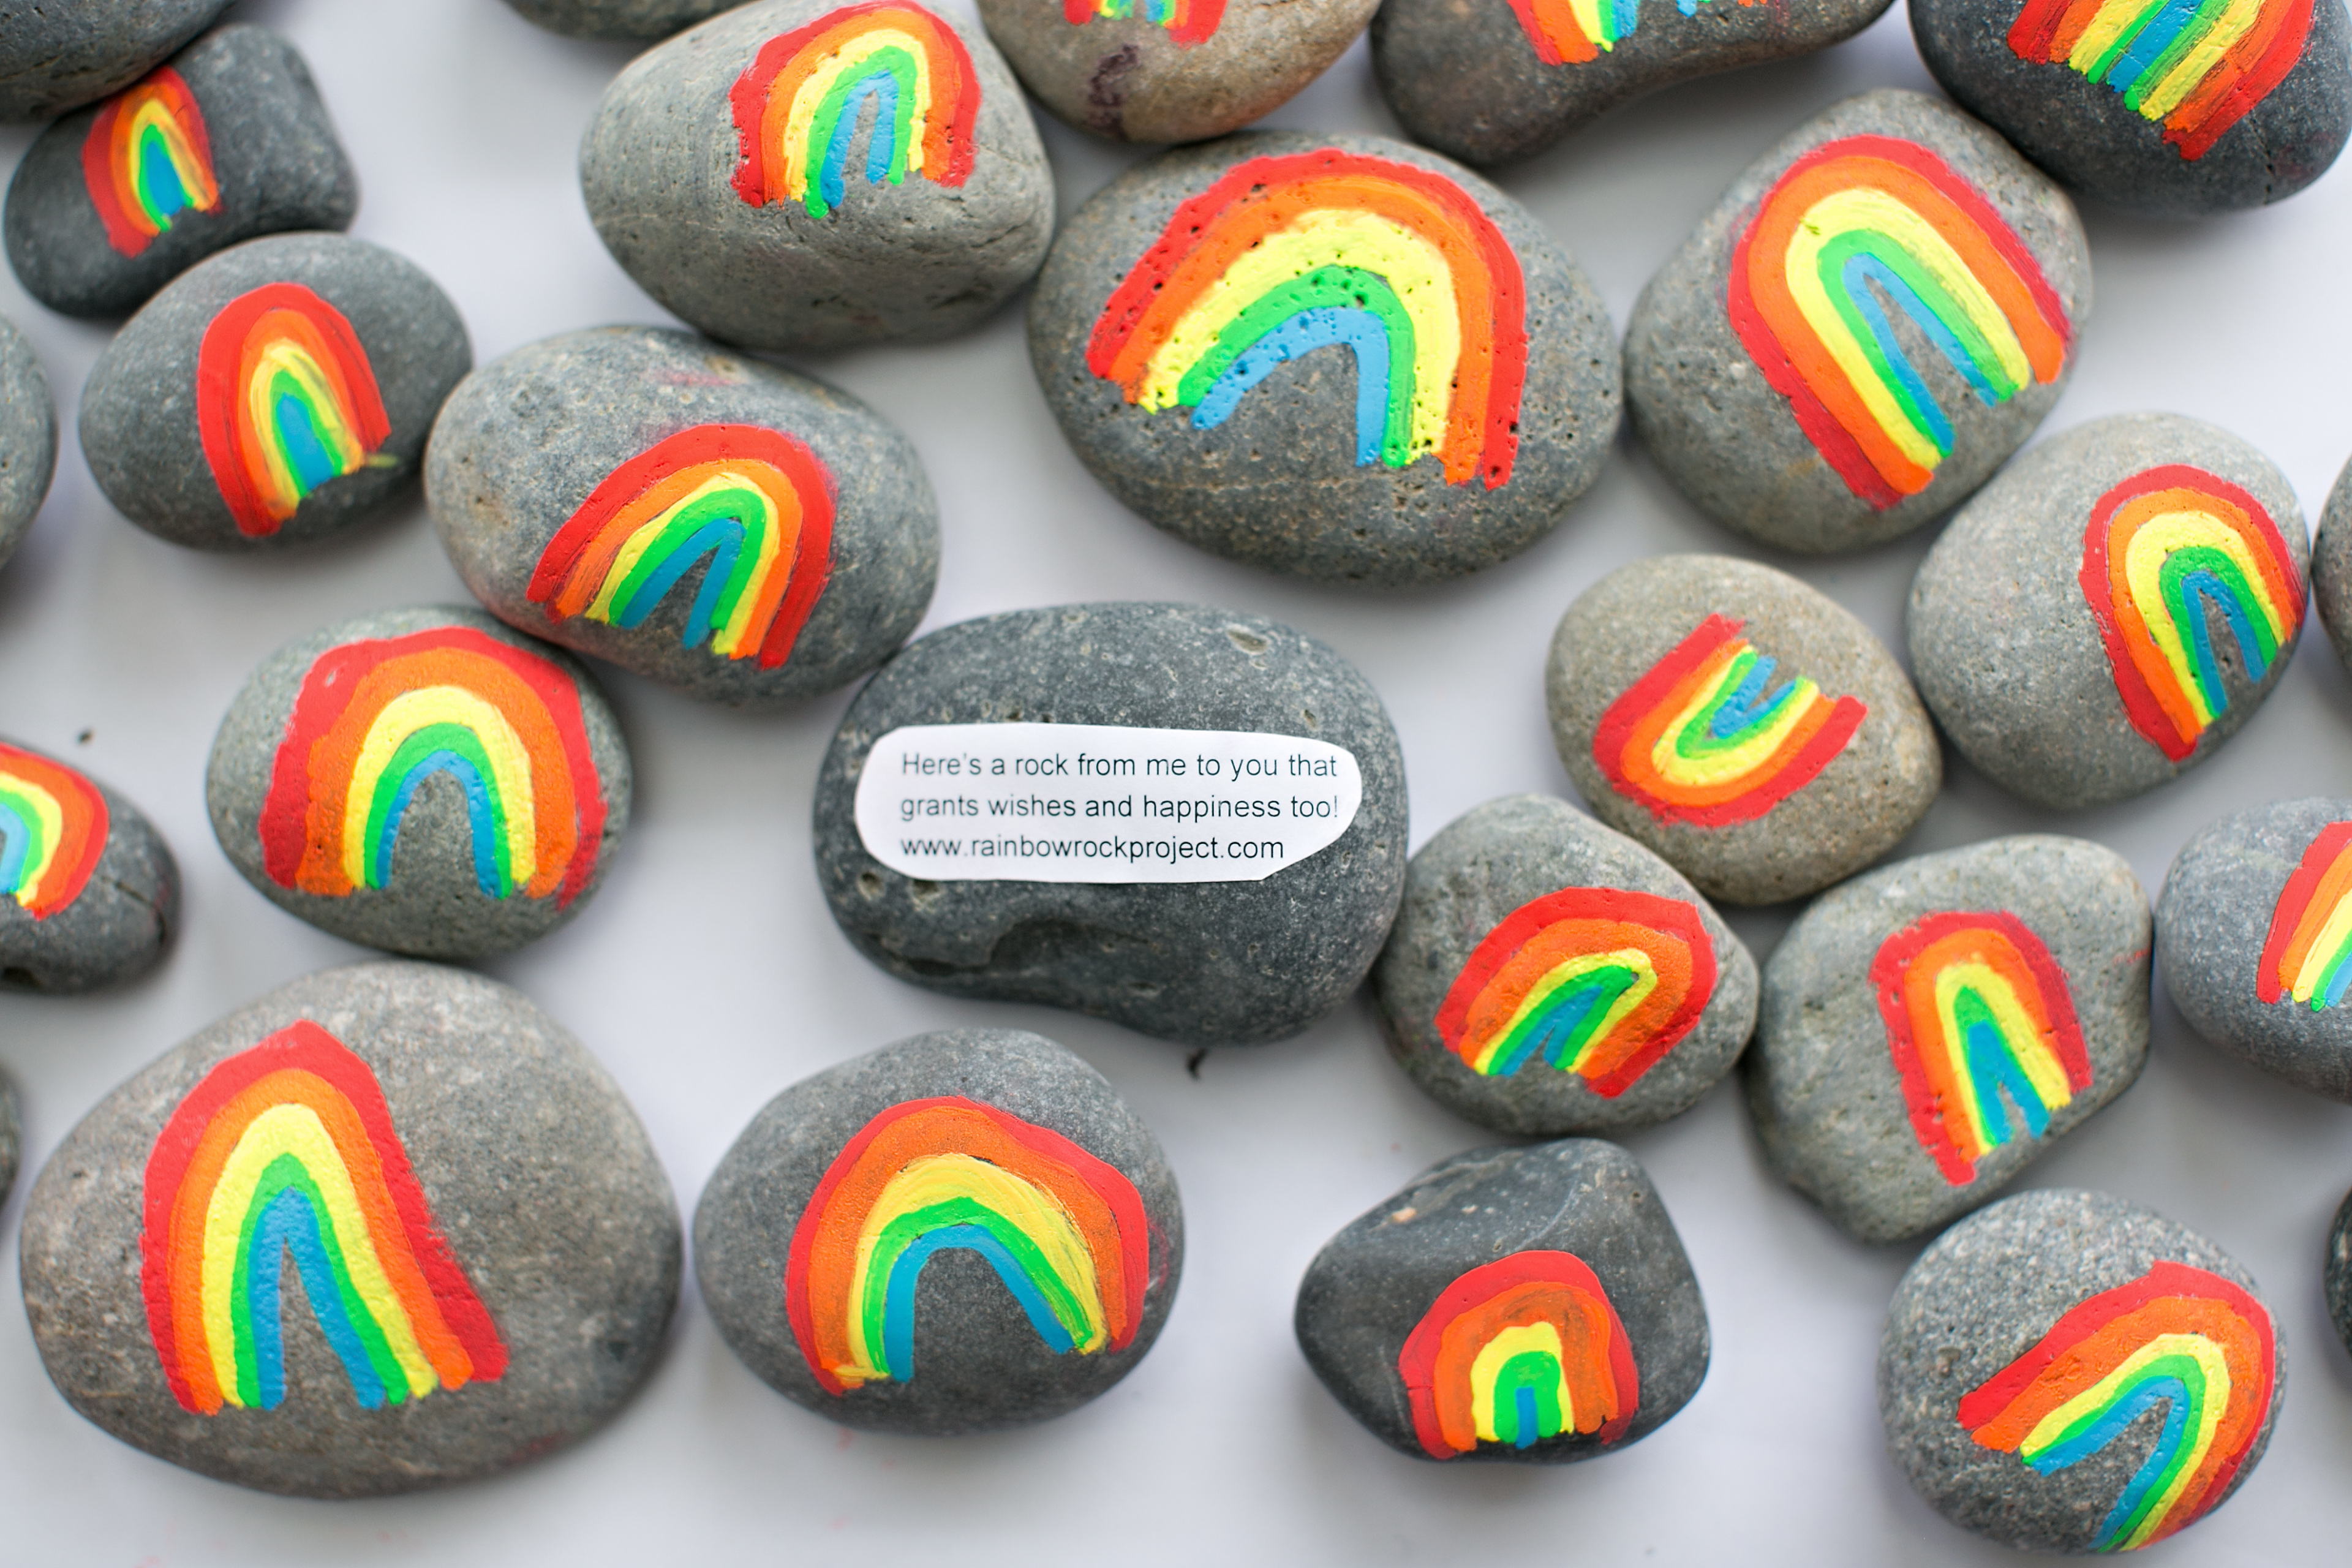 Rainbow Rock (Click on the + sign below to show description)